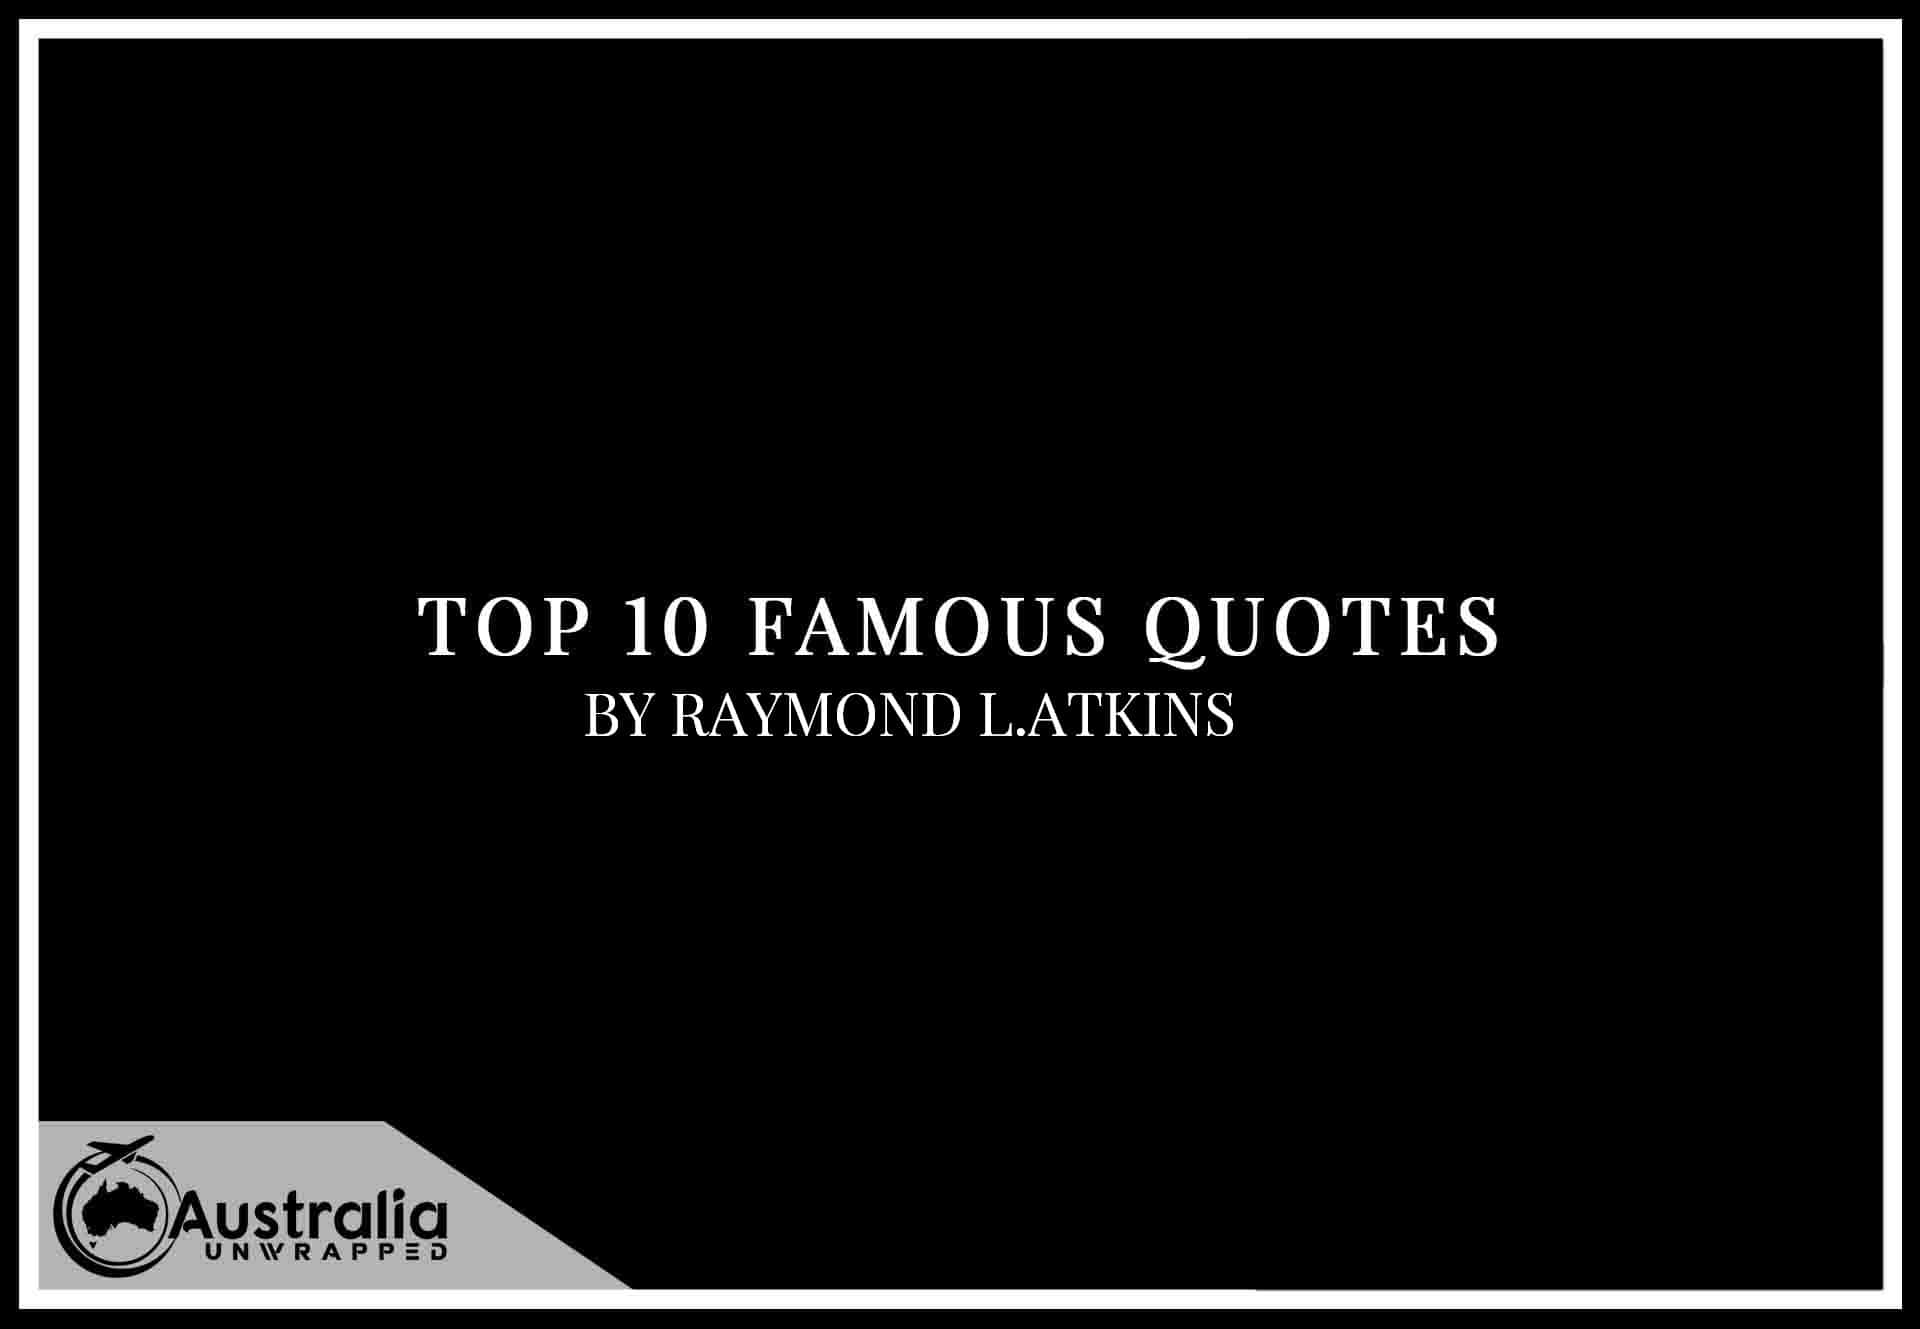 Top 10 Famous Quotes by Author Raymond L. Atkins